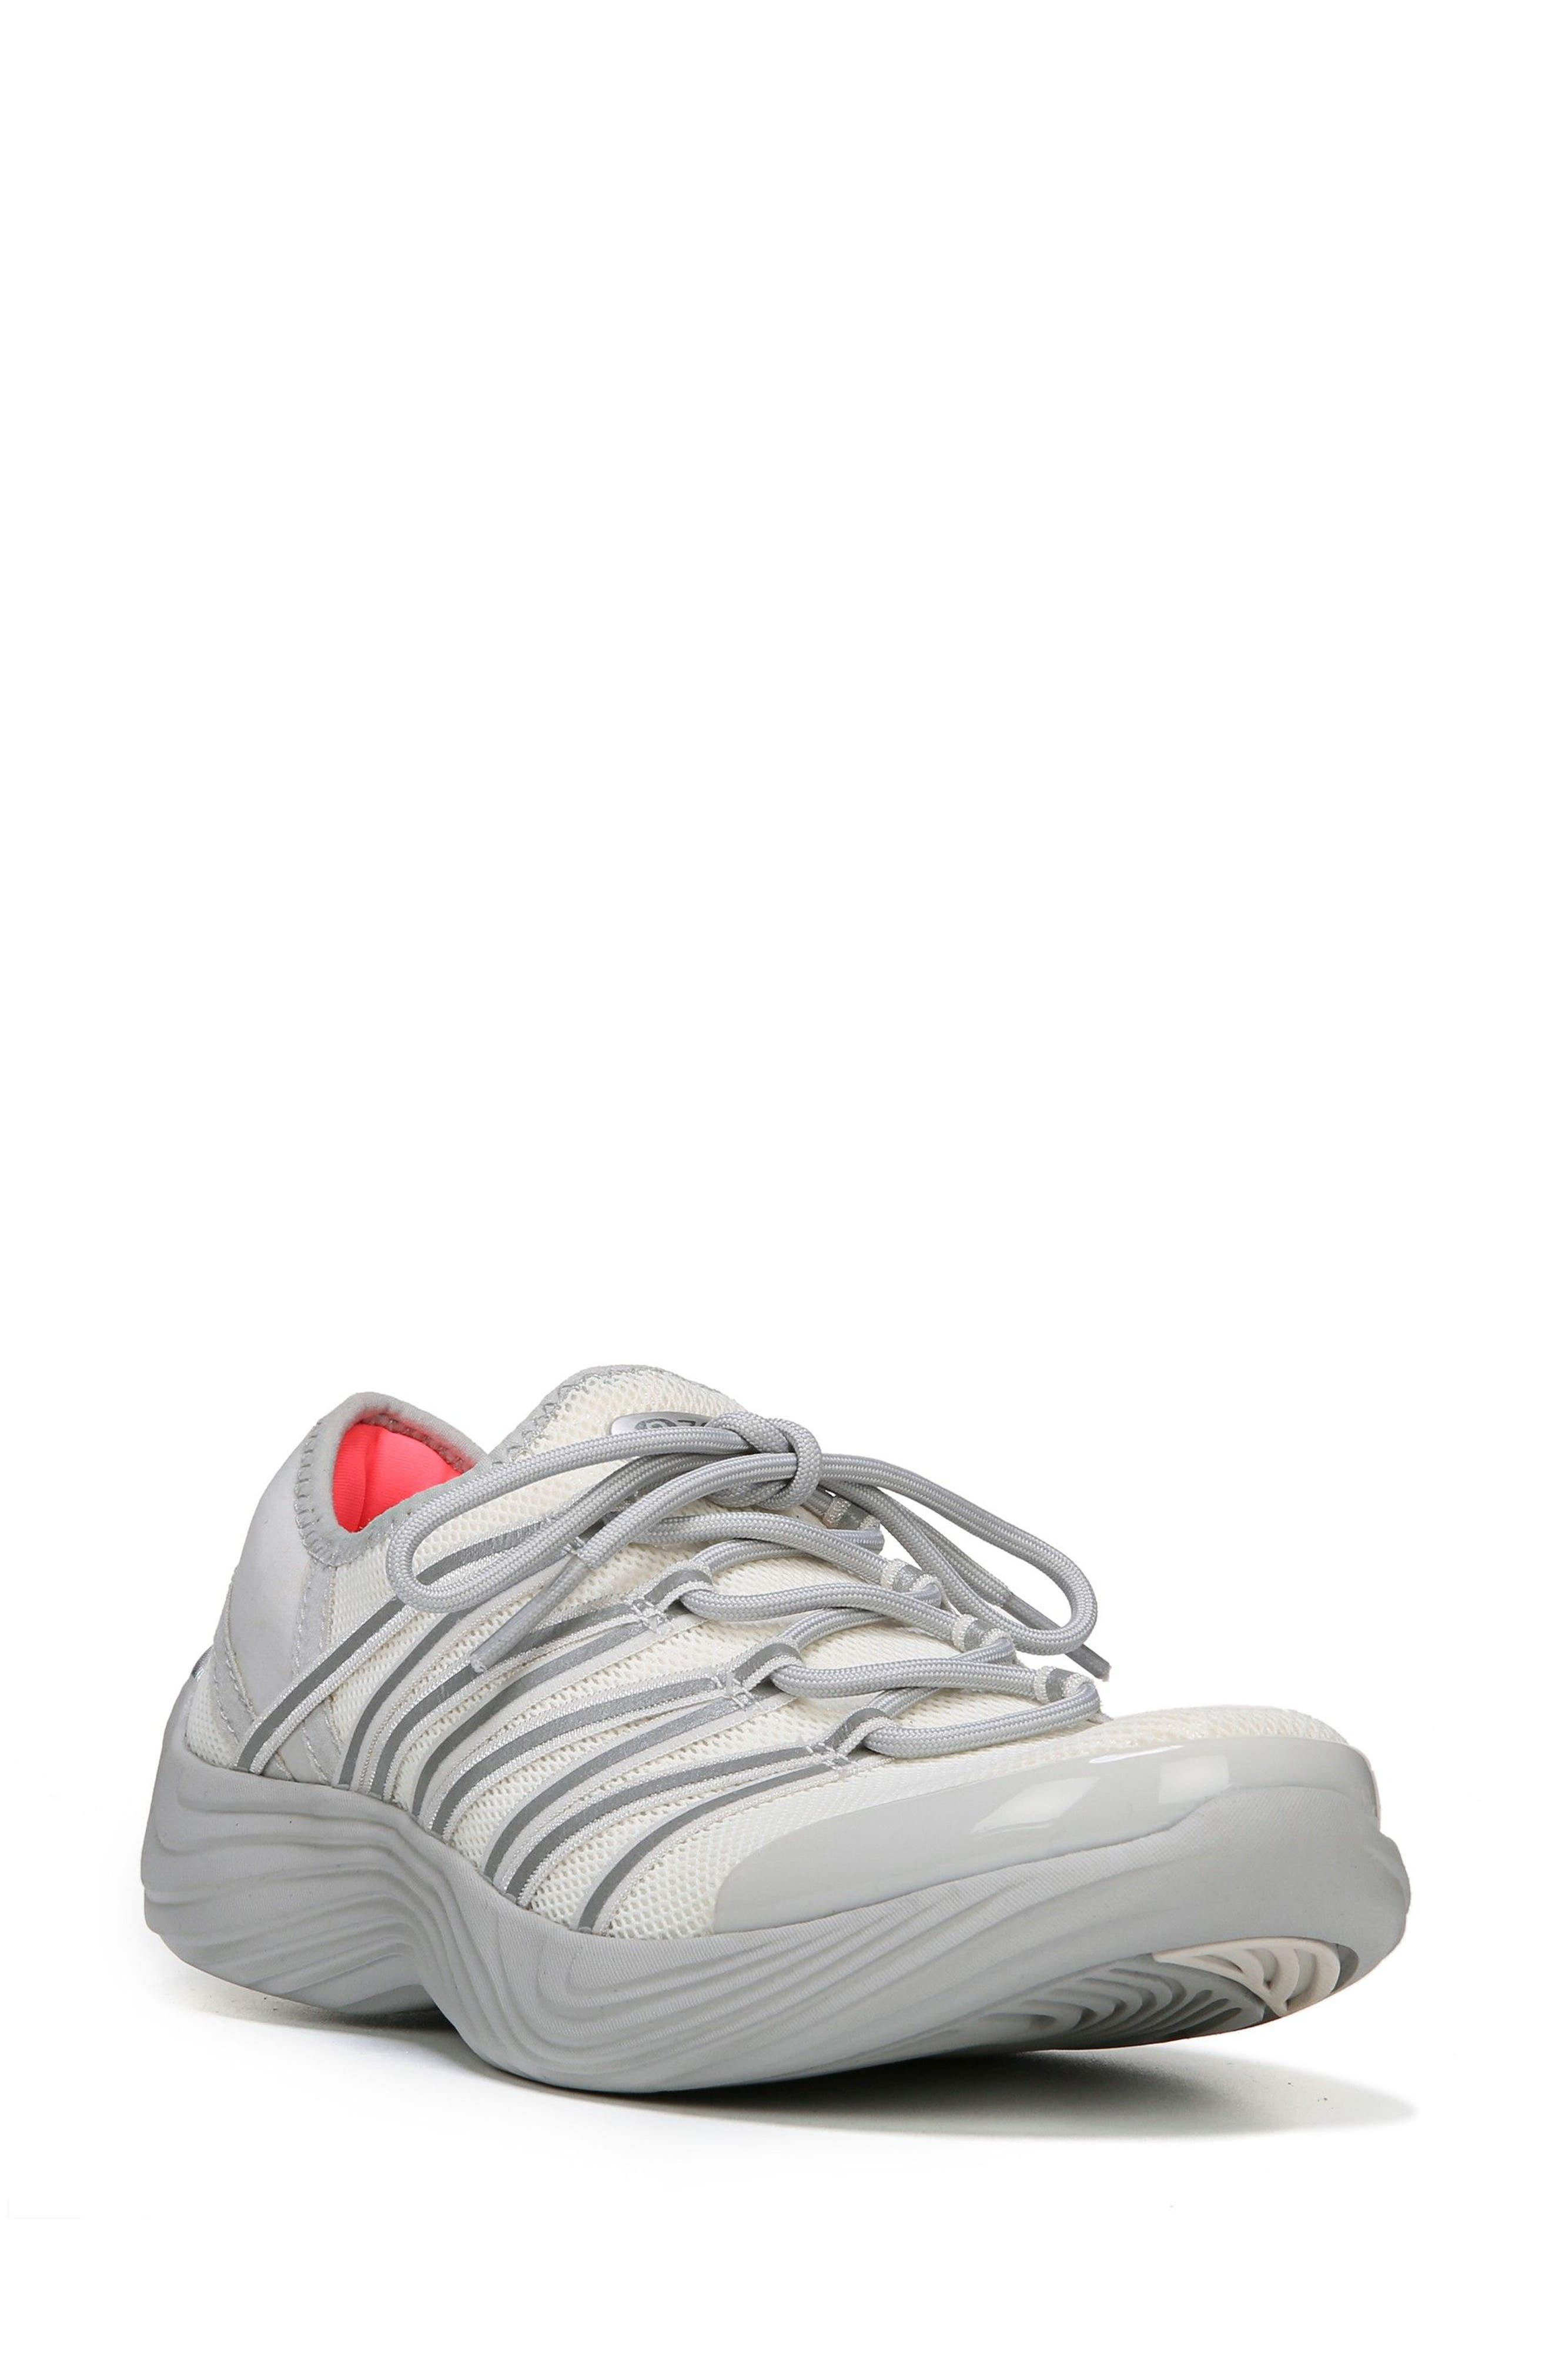 Tender Sneaker,                             Main thumbnail 3, color,